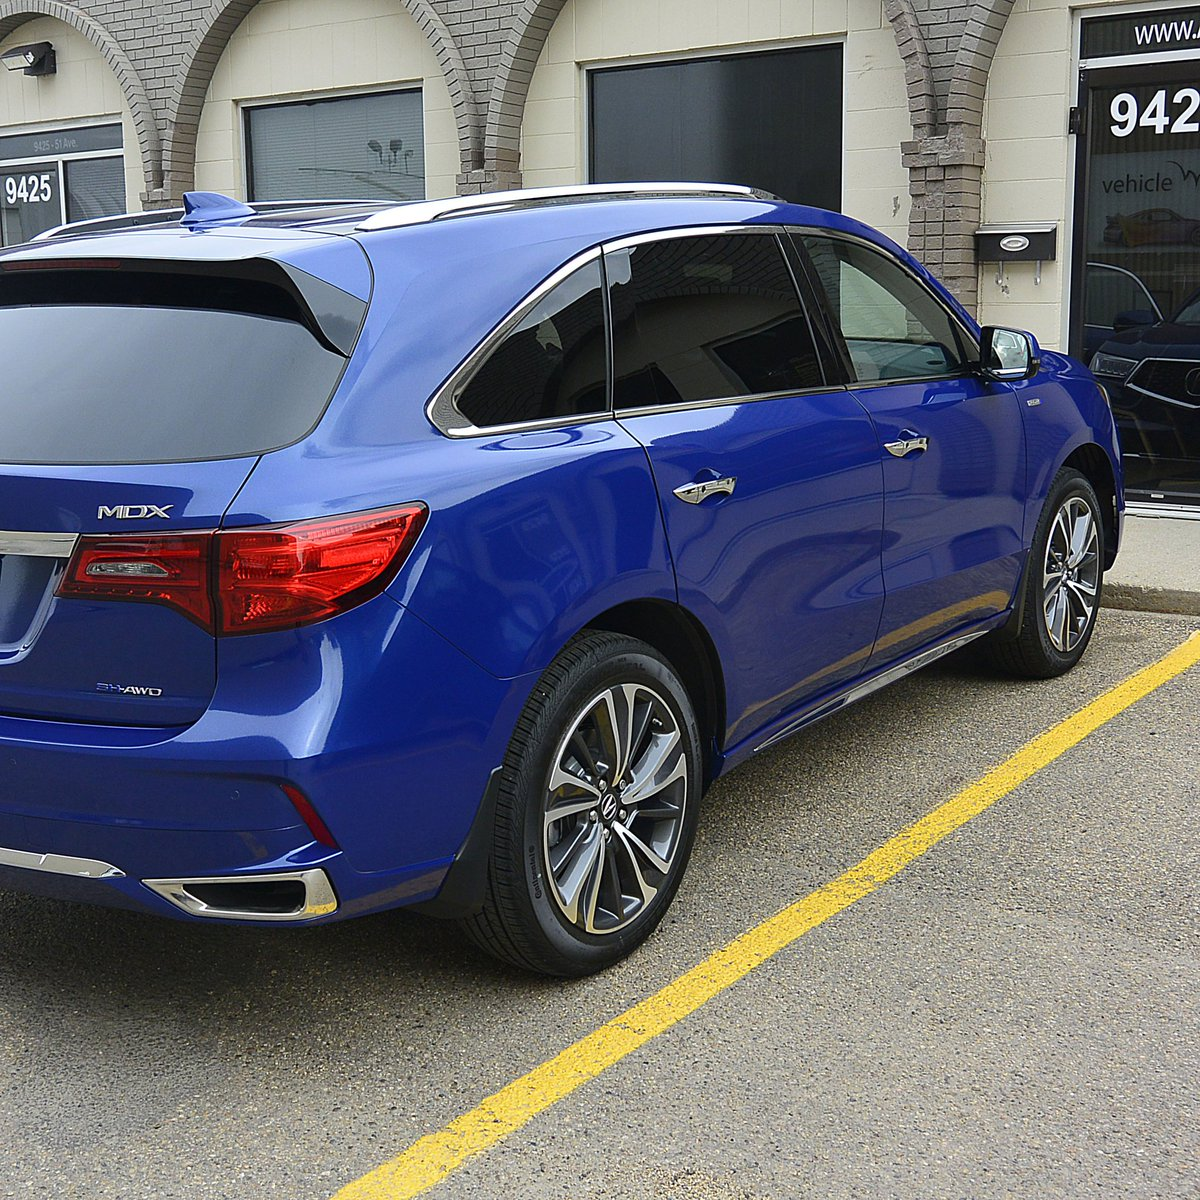 Alberta Car Wrap On Twitter A Full Colour Change For This Acura Mdx From White To Blue Acura Mdx Blue Wrap Vinyl Yegwraps Vinylwraps Paintisdead Yeg Carwrap Wrappednotpainted Albertacarwrap Edmonton Car Cars